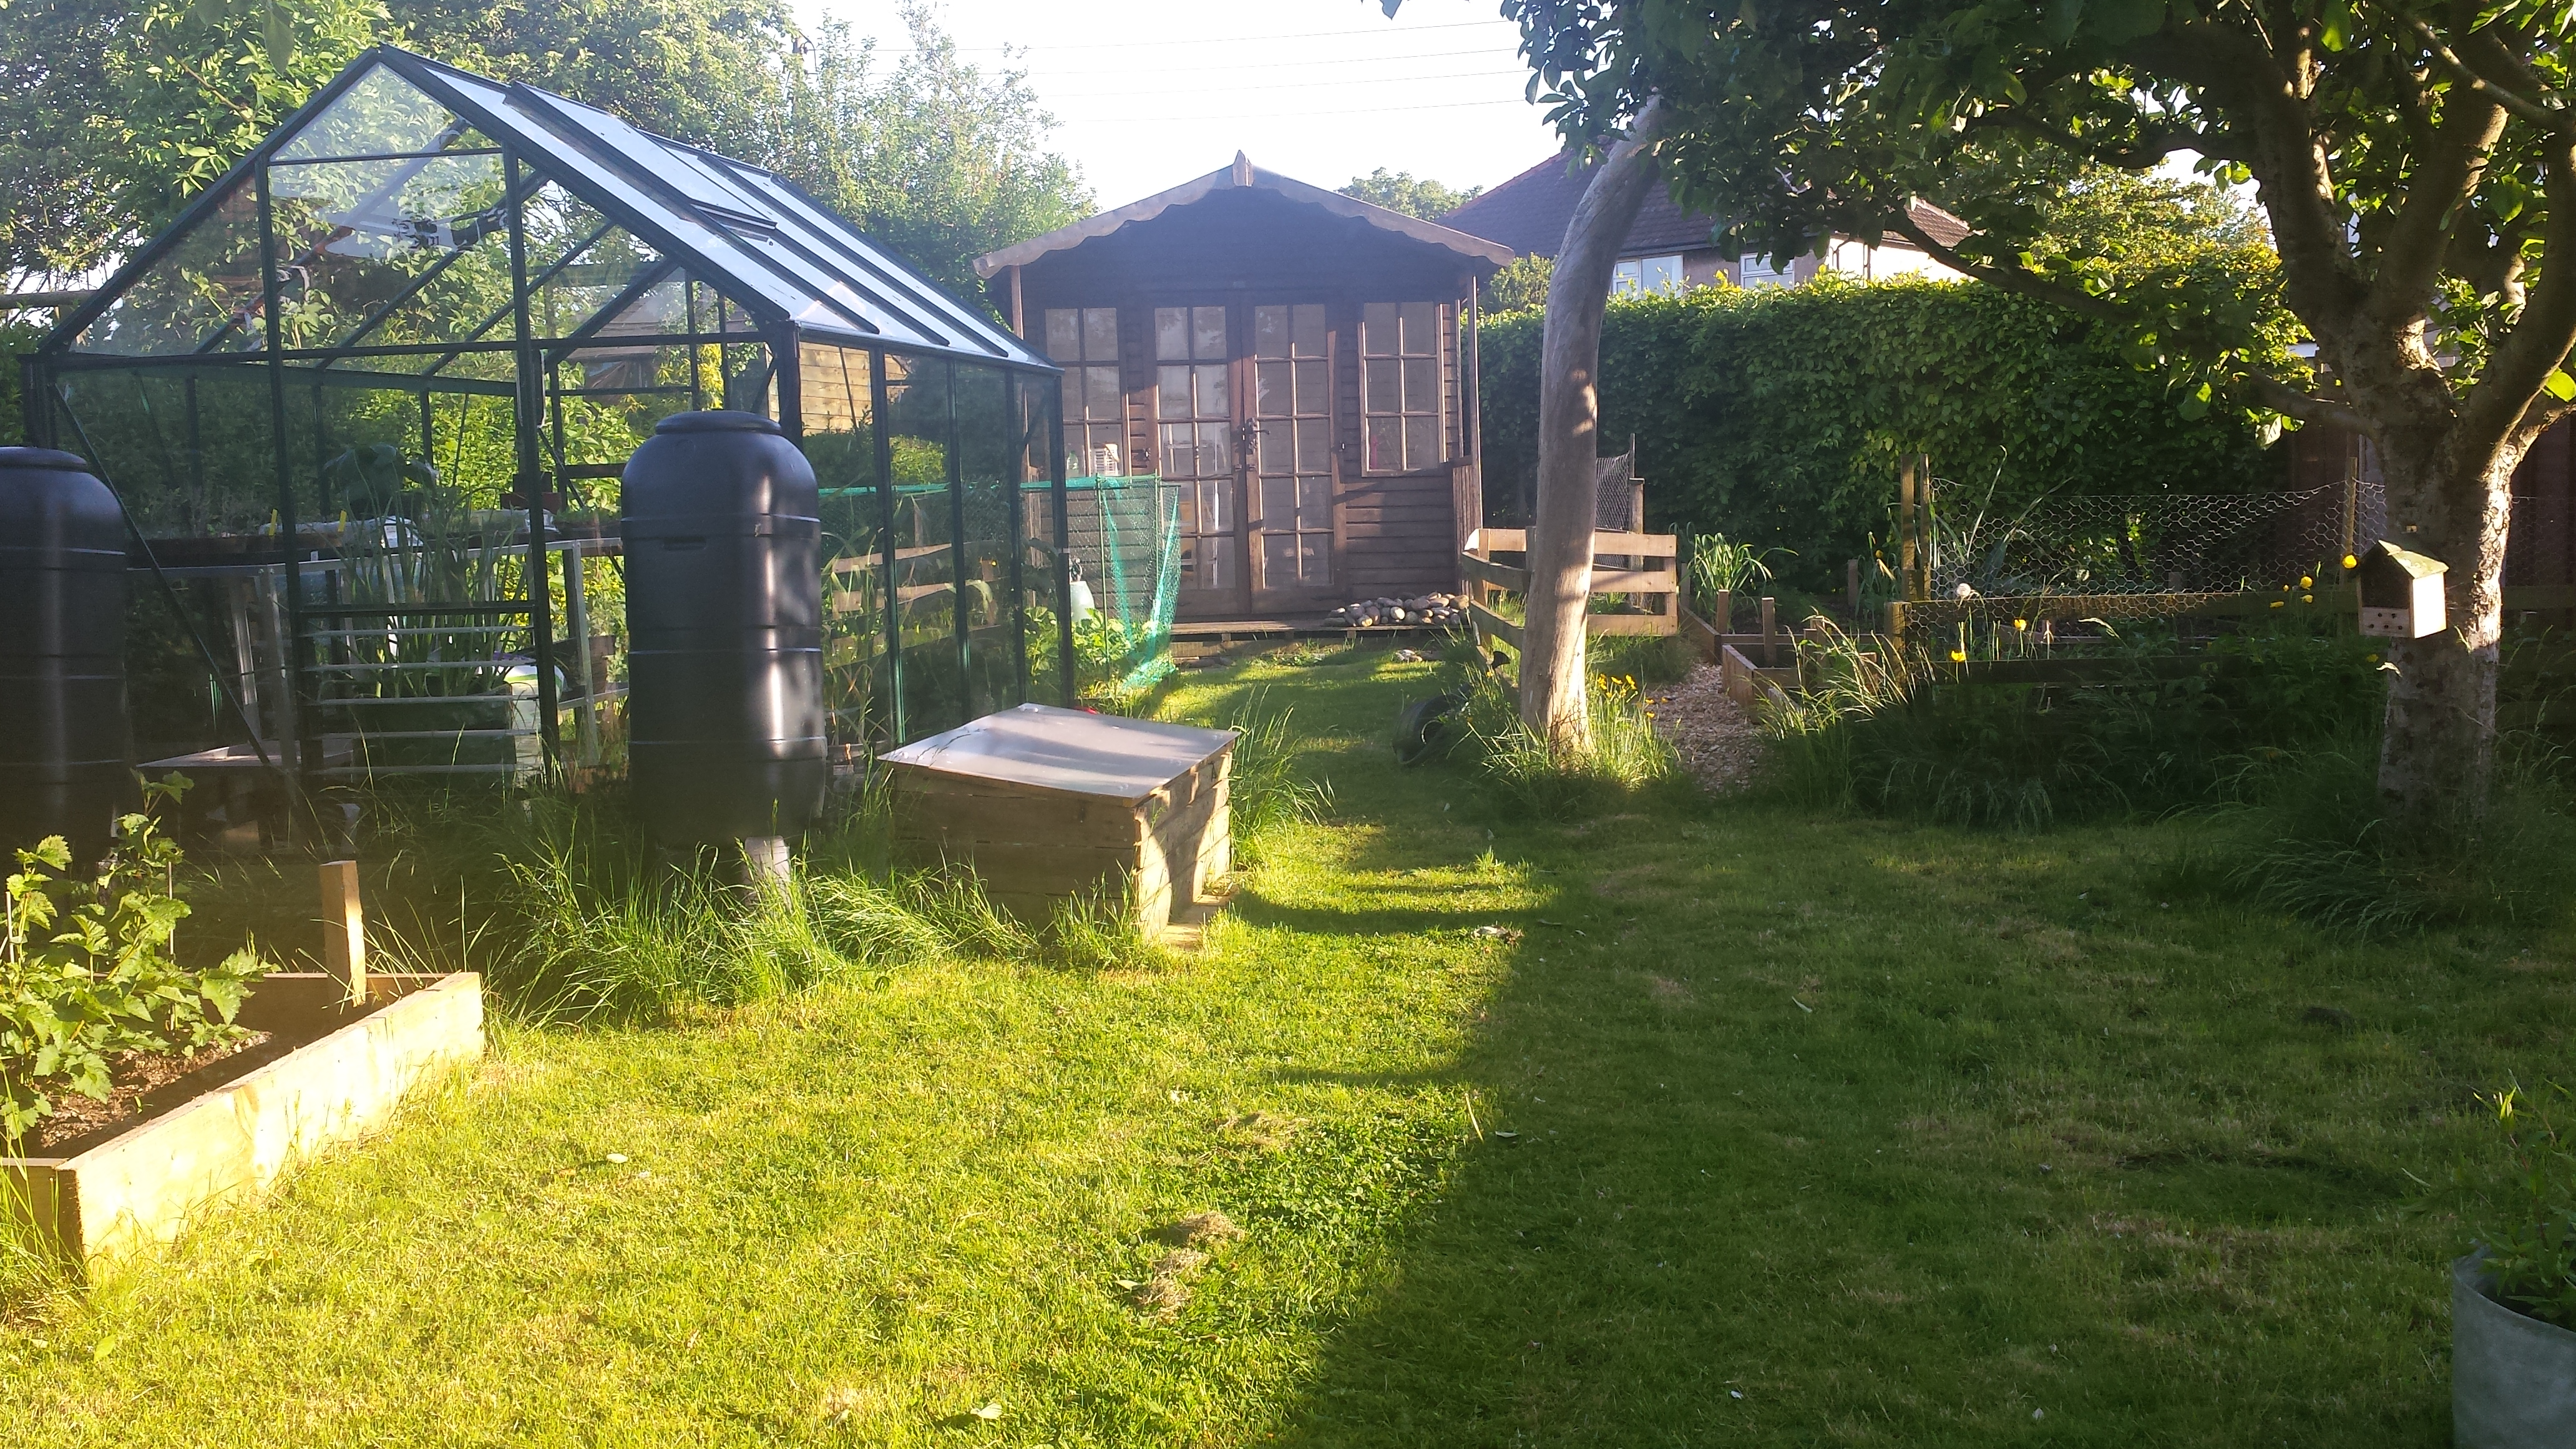 Sunny garden with a greenhouse, cold frame, summer house and apple tree